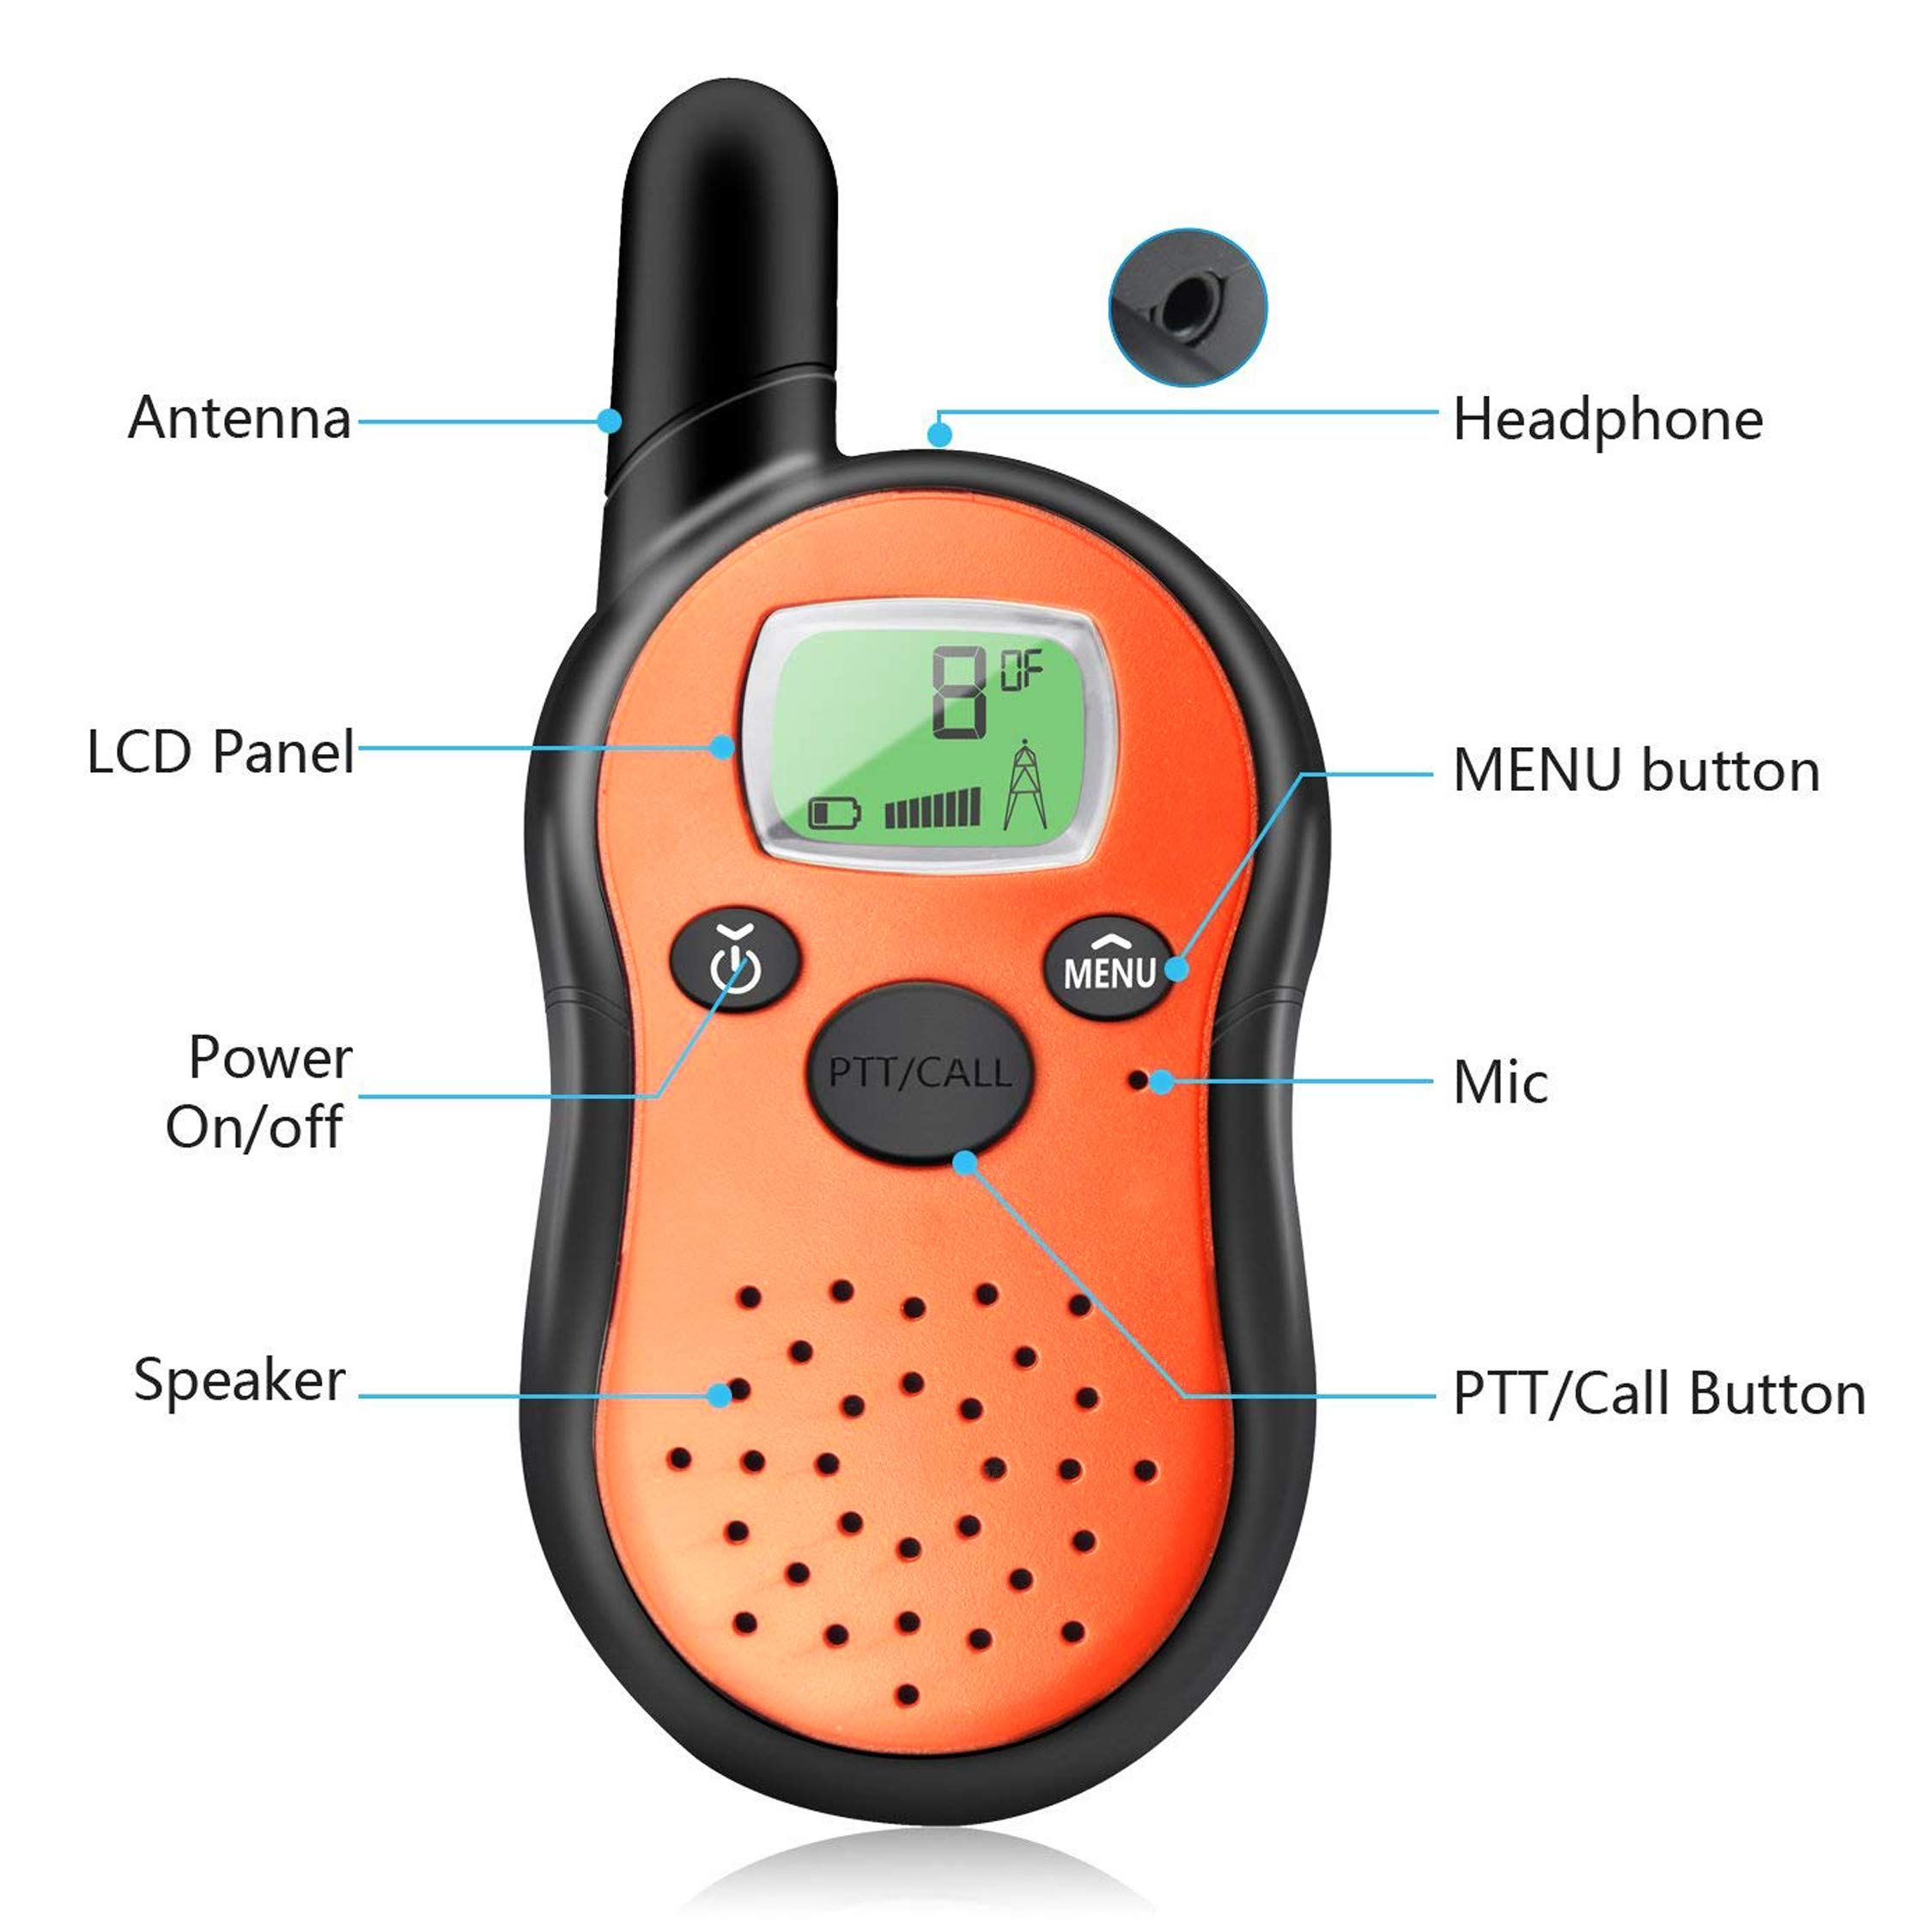 TiMi Tree Walkie Talkies for Kids Toddlers Two Way Radios Toy Voice Activated Long Range, Outdoor Exploration Gifts for Age 5 6 7 Year Old Boys Girls by TiMi Tree (Image #3)